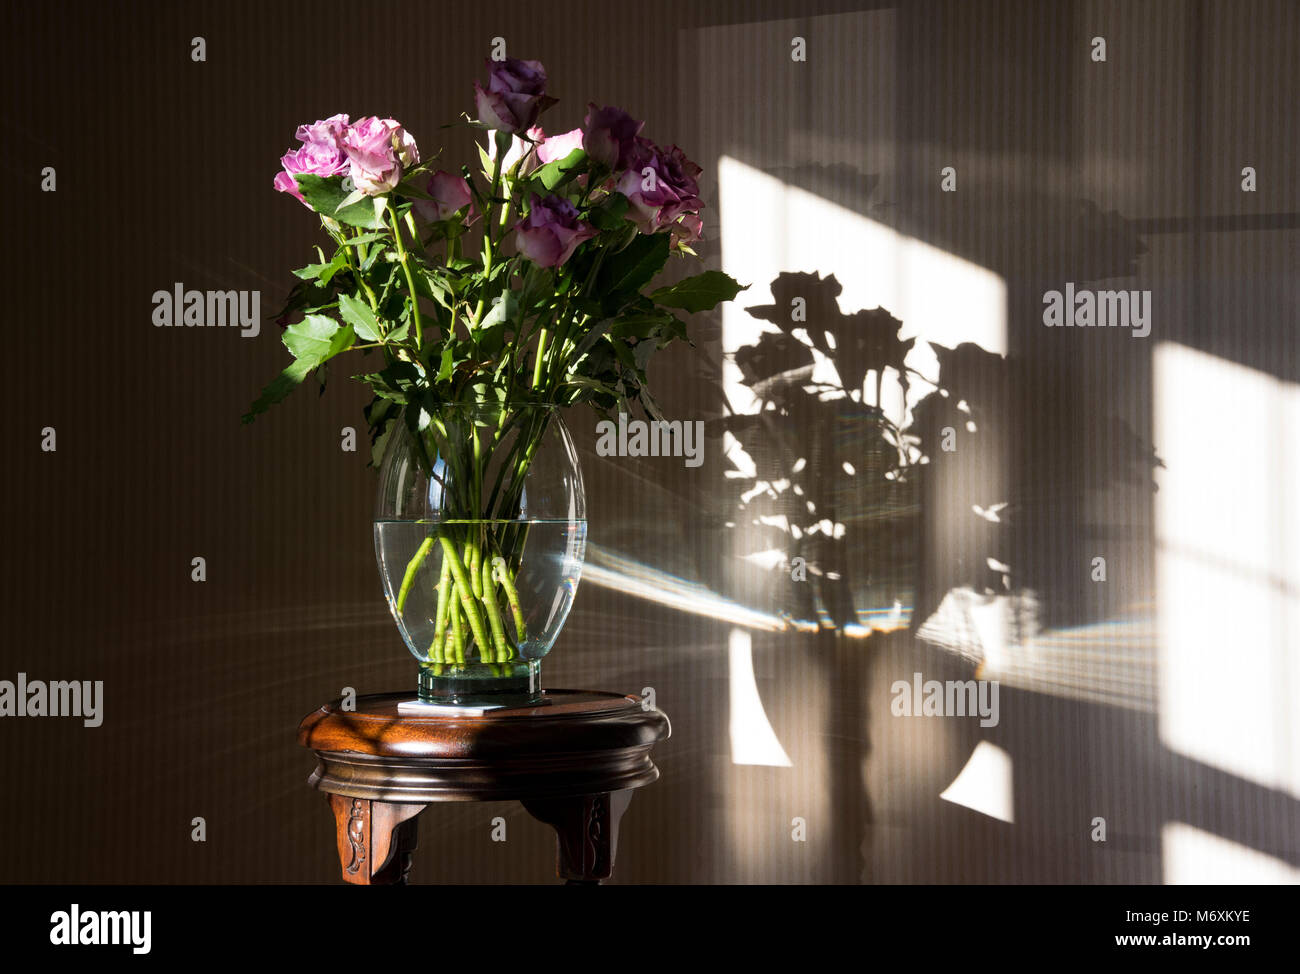 Burton upon trent stock photos burton upon trent stock images a vase of roses near a window with shadows hanbury tutbury burton upon reviewsmspy